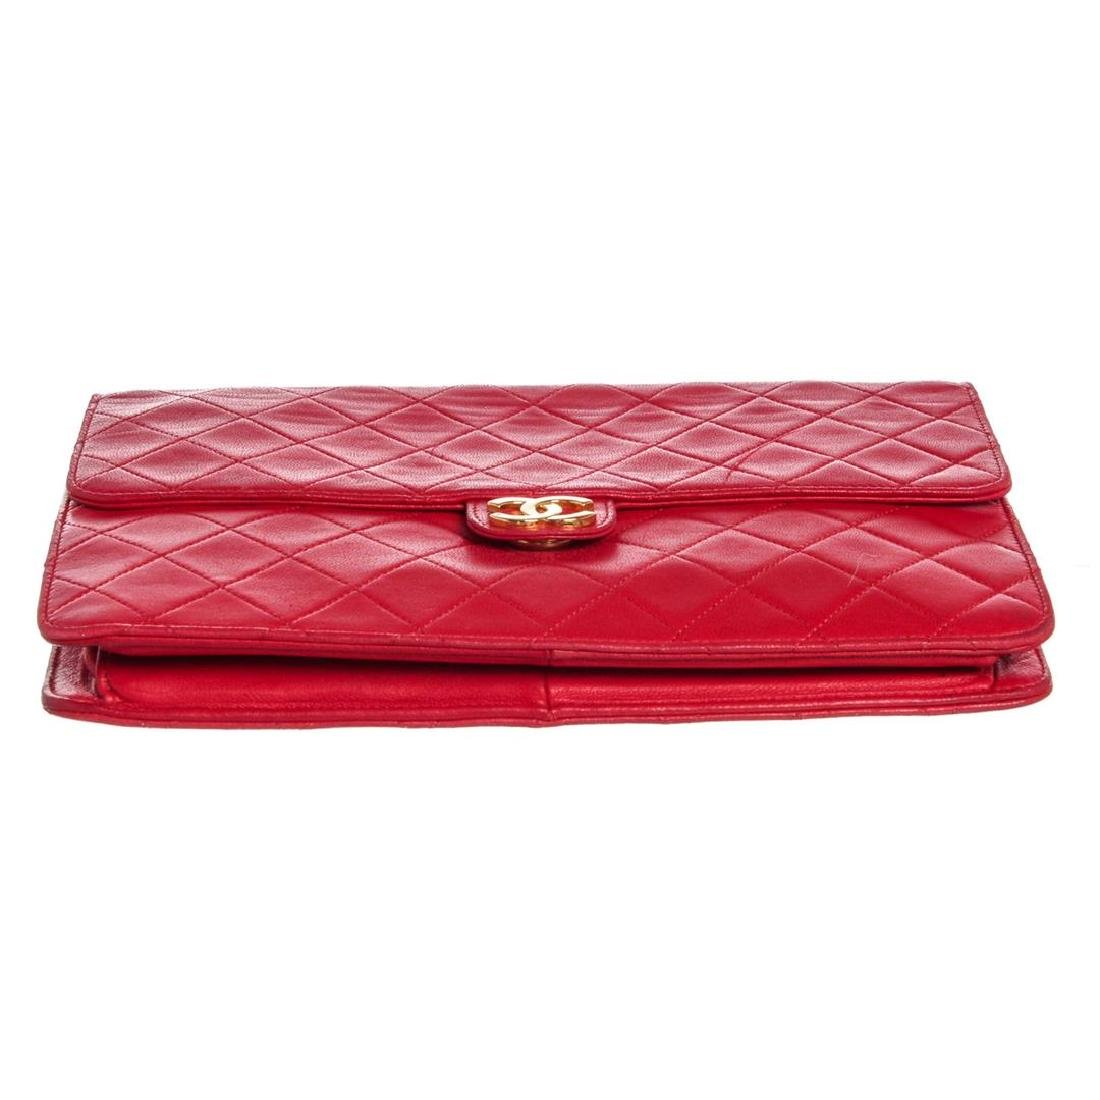 Chanel Red Quilted Lambskin Leather Flap Shoulder - 4